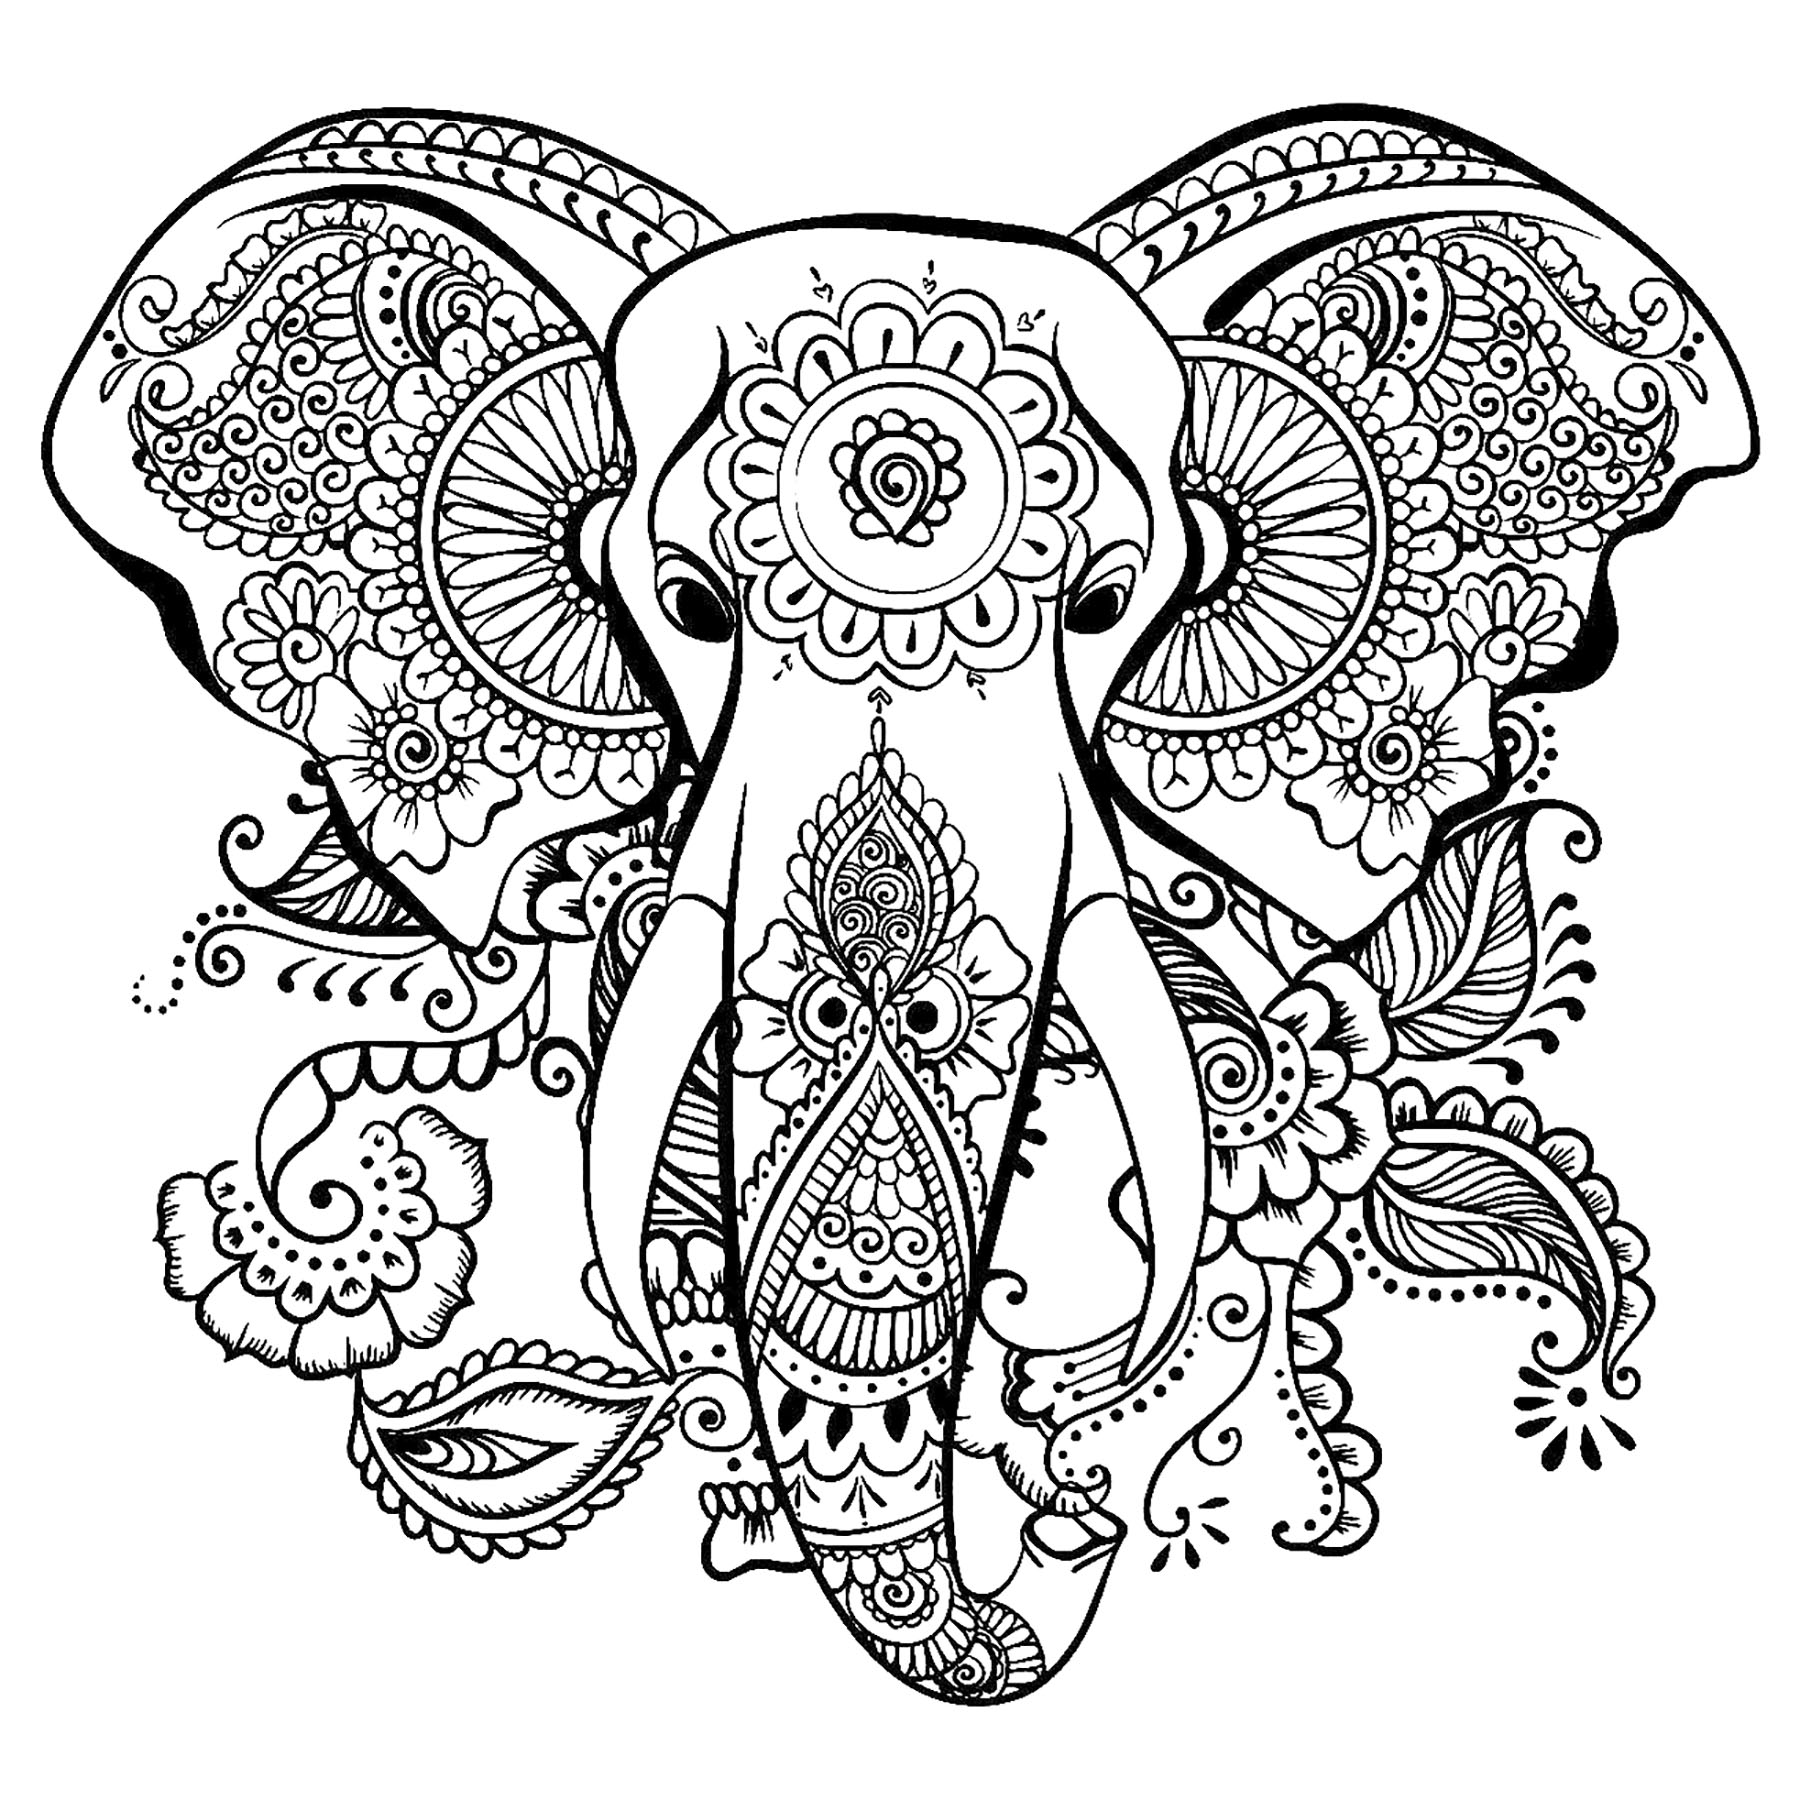 printable elephant coloring pages 20 free printable hard elephant coloring pages for adults elephant pages printable coloring